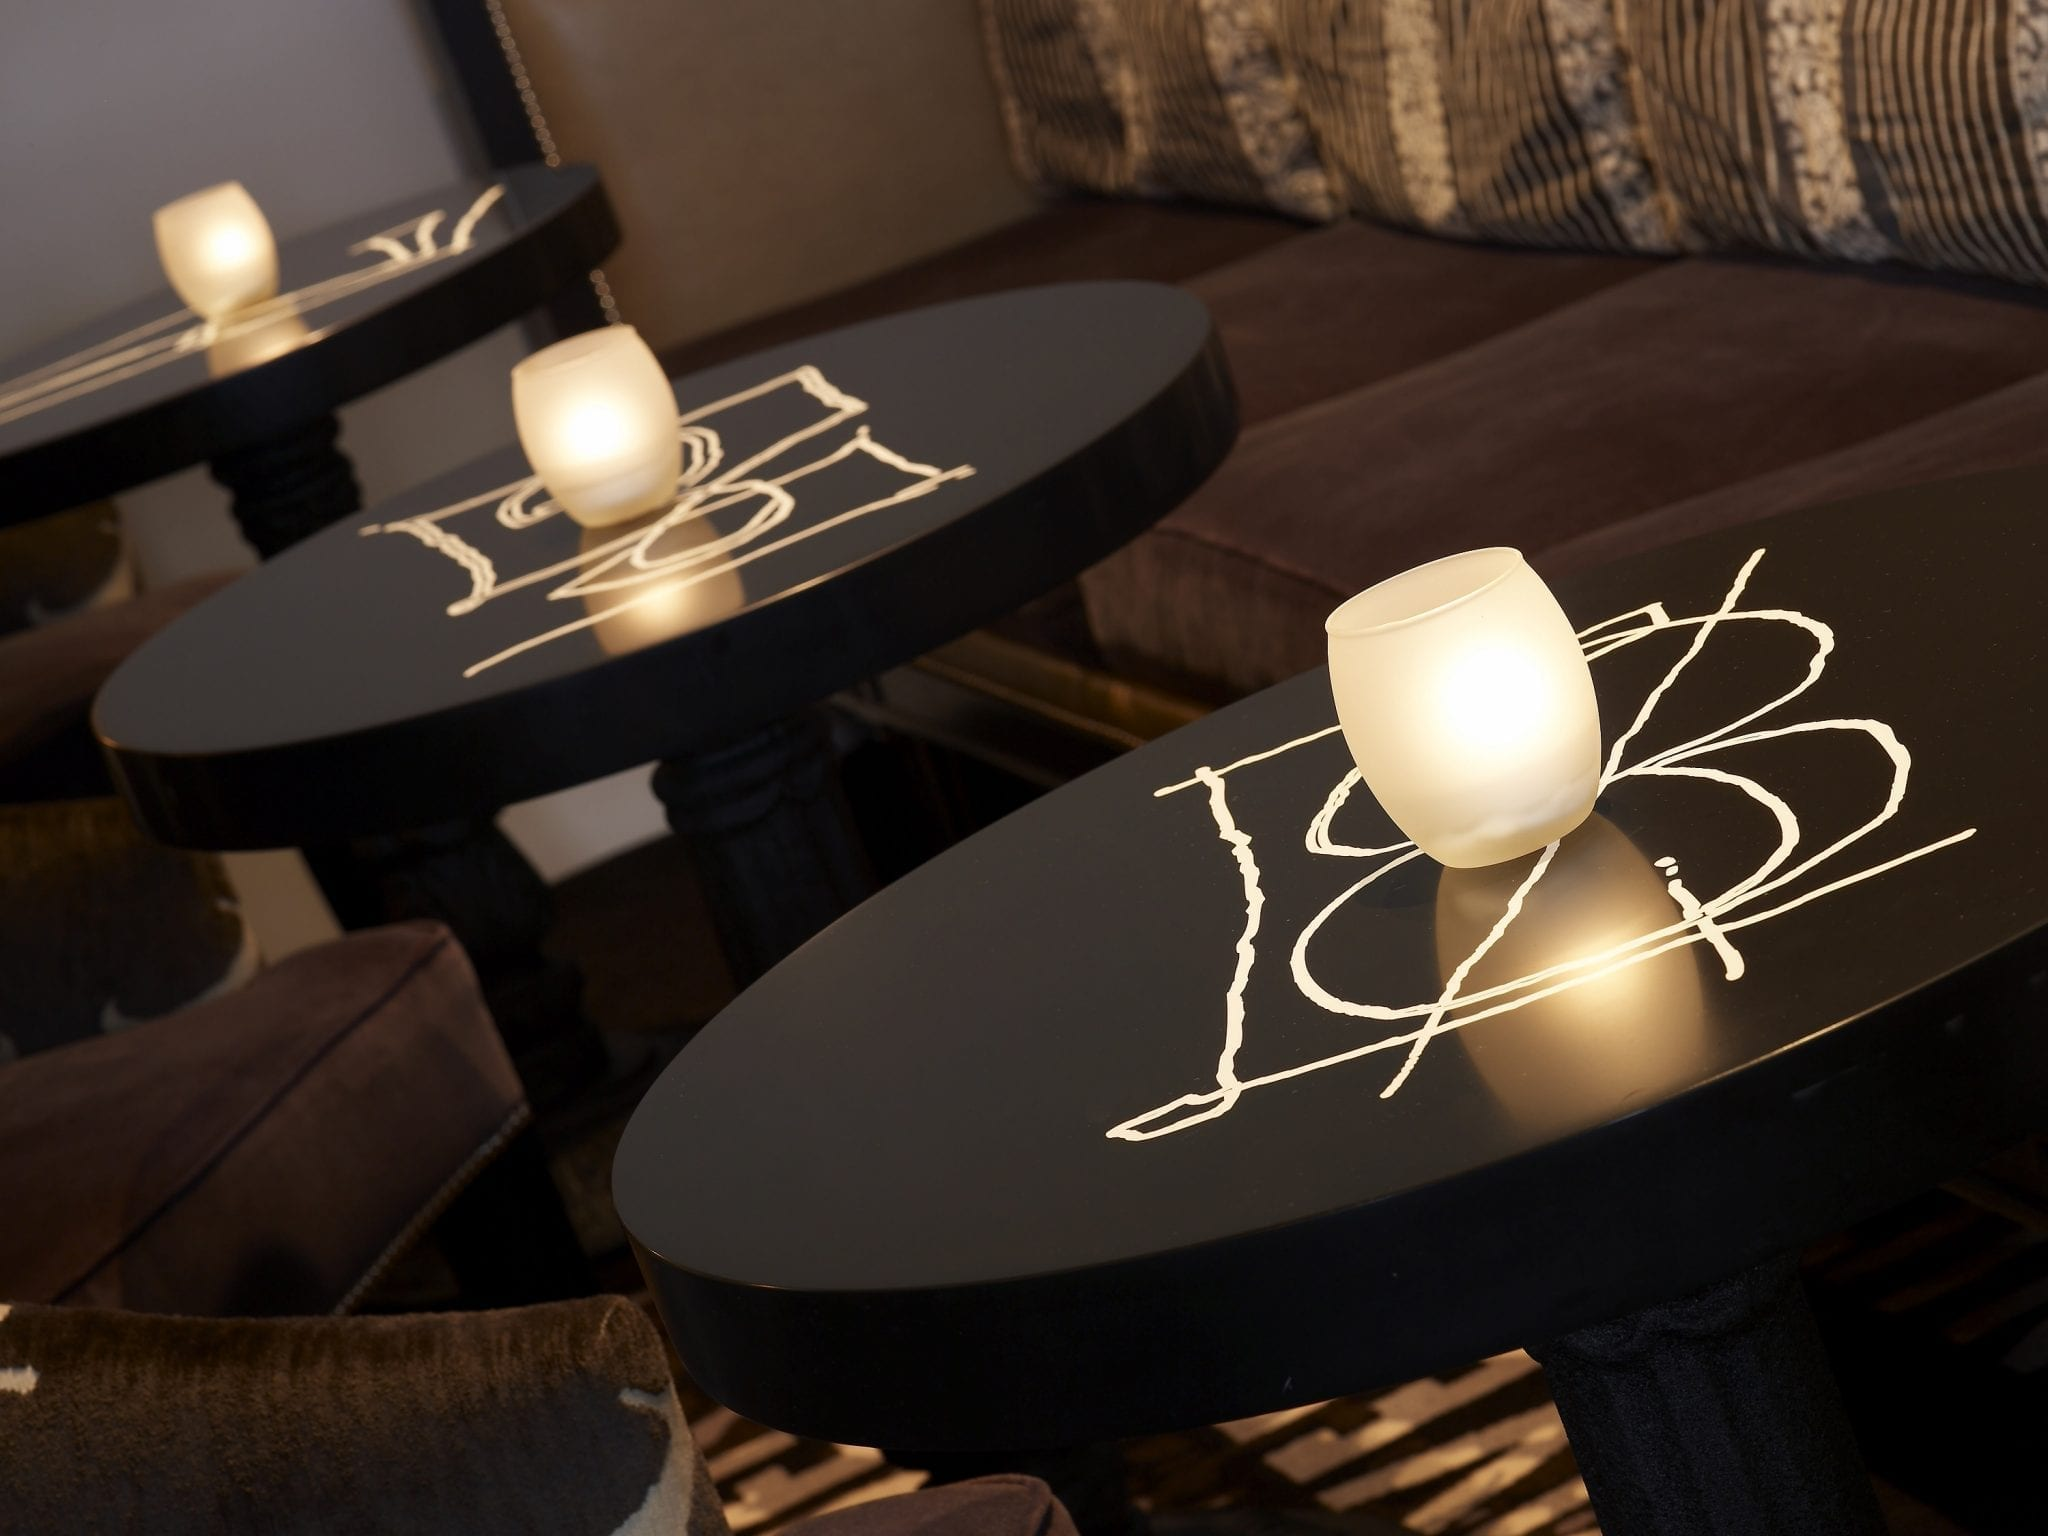 Close up of Bar Pleiades' seating area, featuring stylish tables designed by Jimmie Martin. In his style, white letters are scrawled large, at the center. A votive glass holds a lit candle, placed on each table.